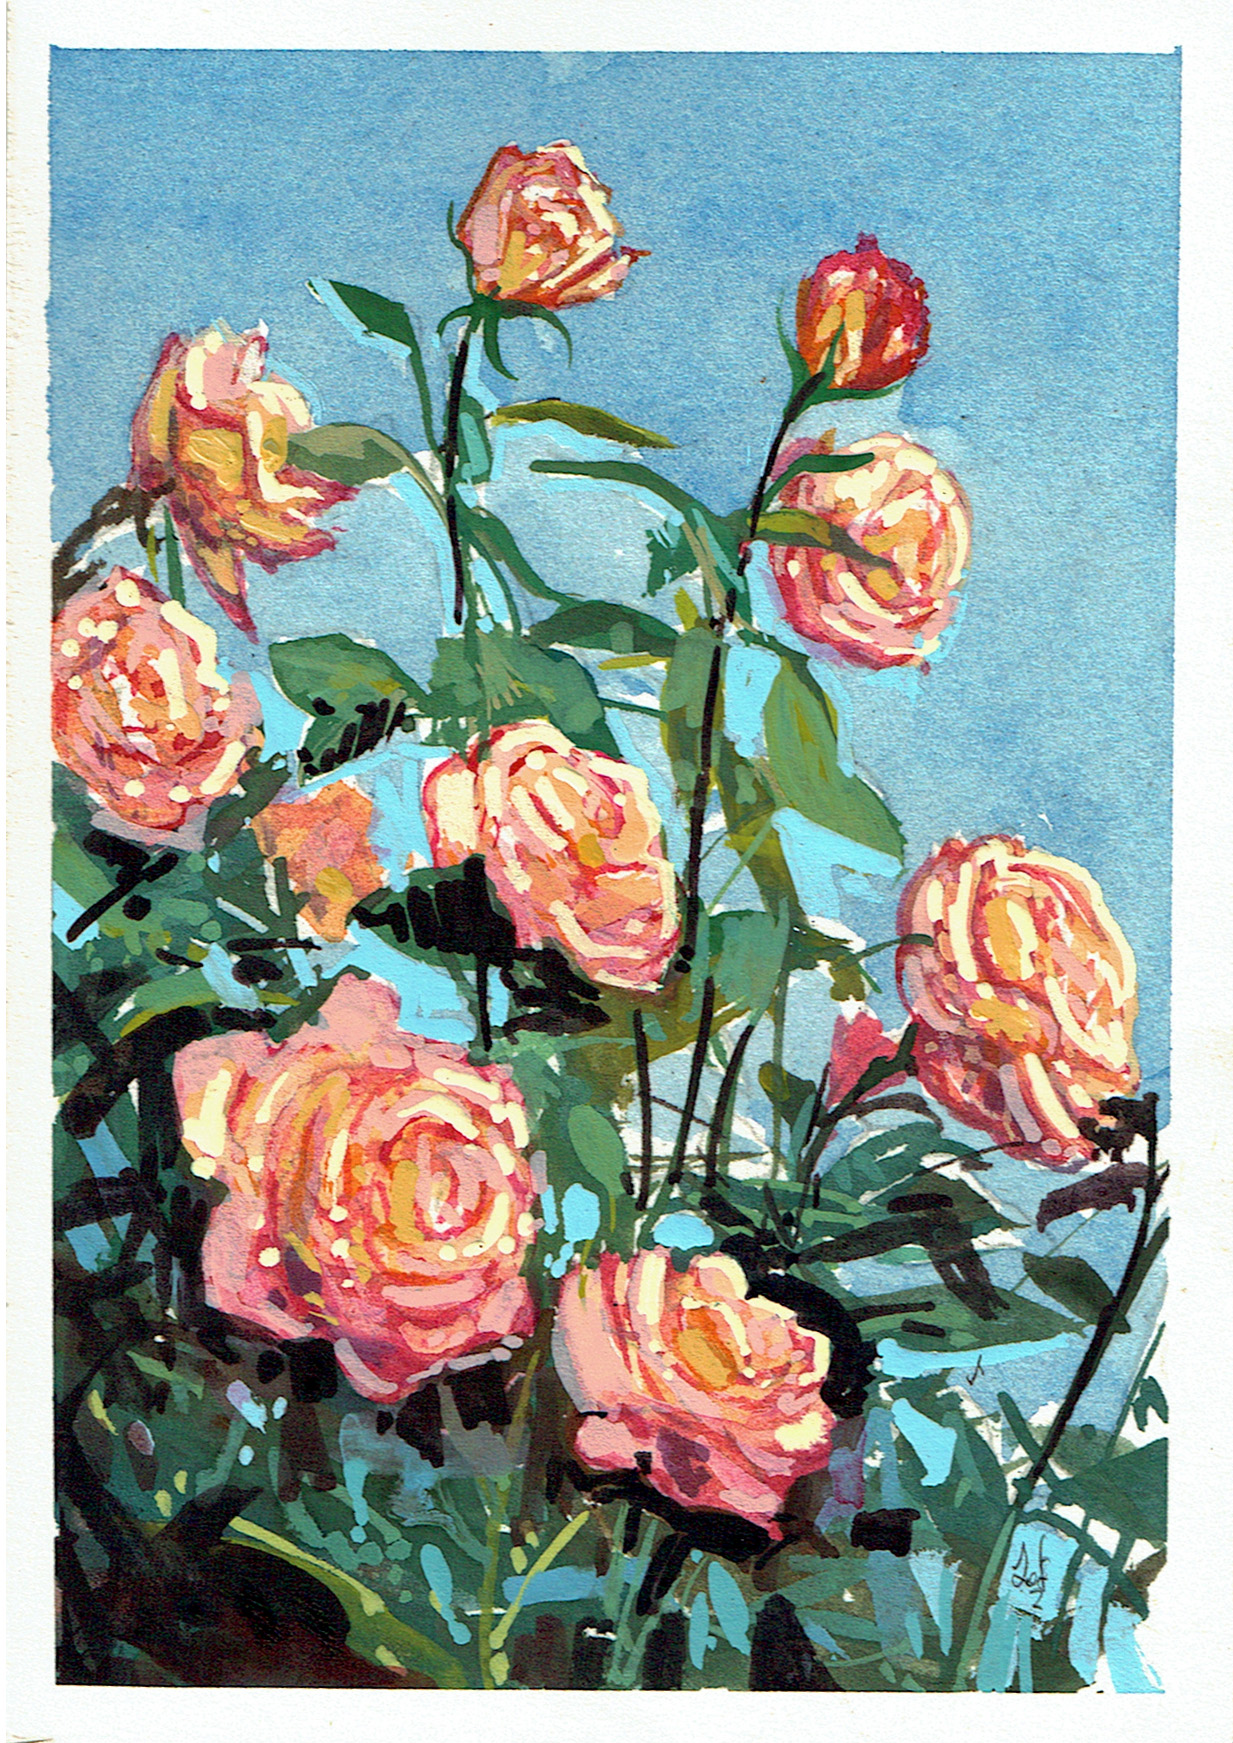 A painting of Roses